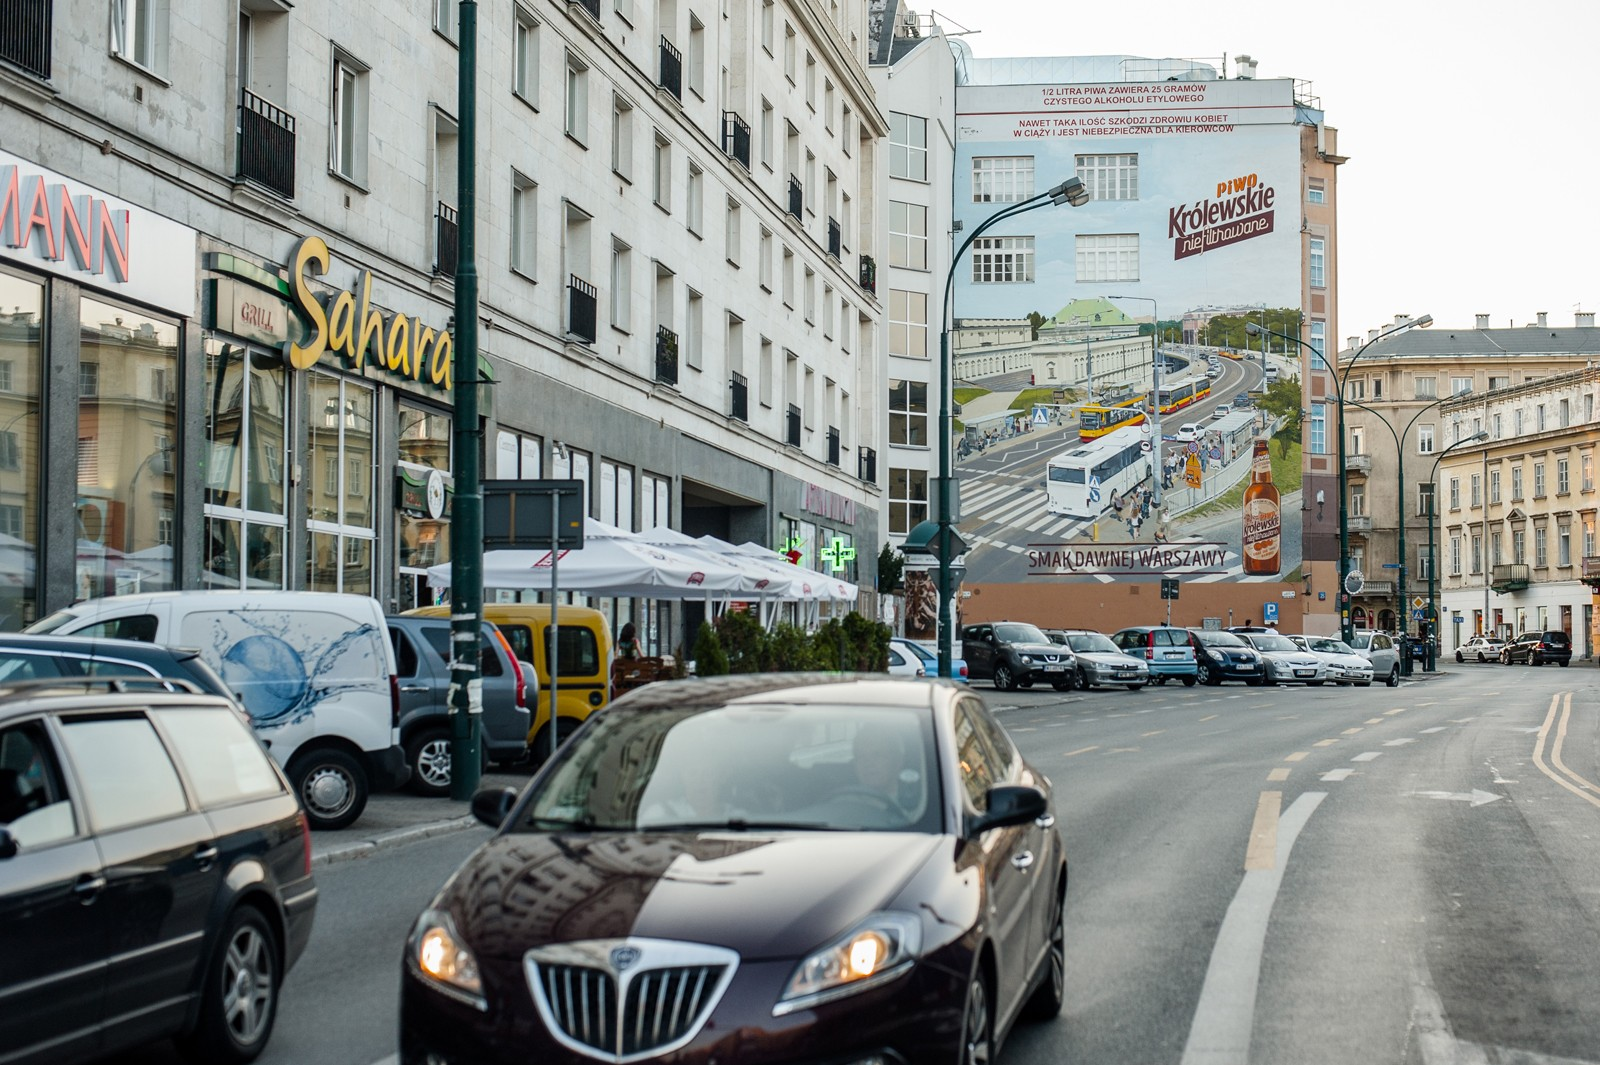 A view on Krucza street in Warsaw with an advertising mural of Krolewskie unfiltered beer in the background | Krolewskie unfiltered | Portfolio